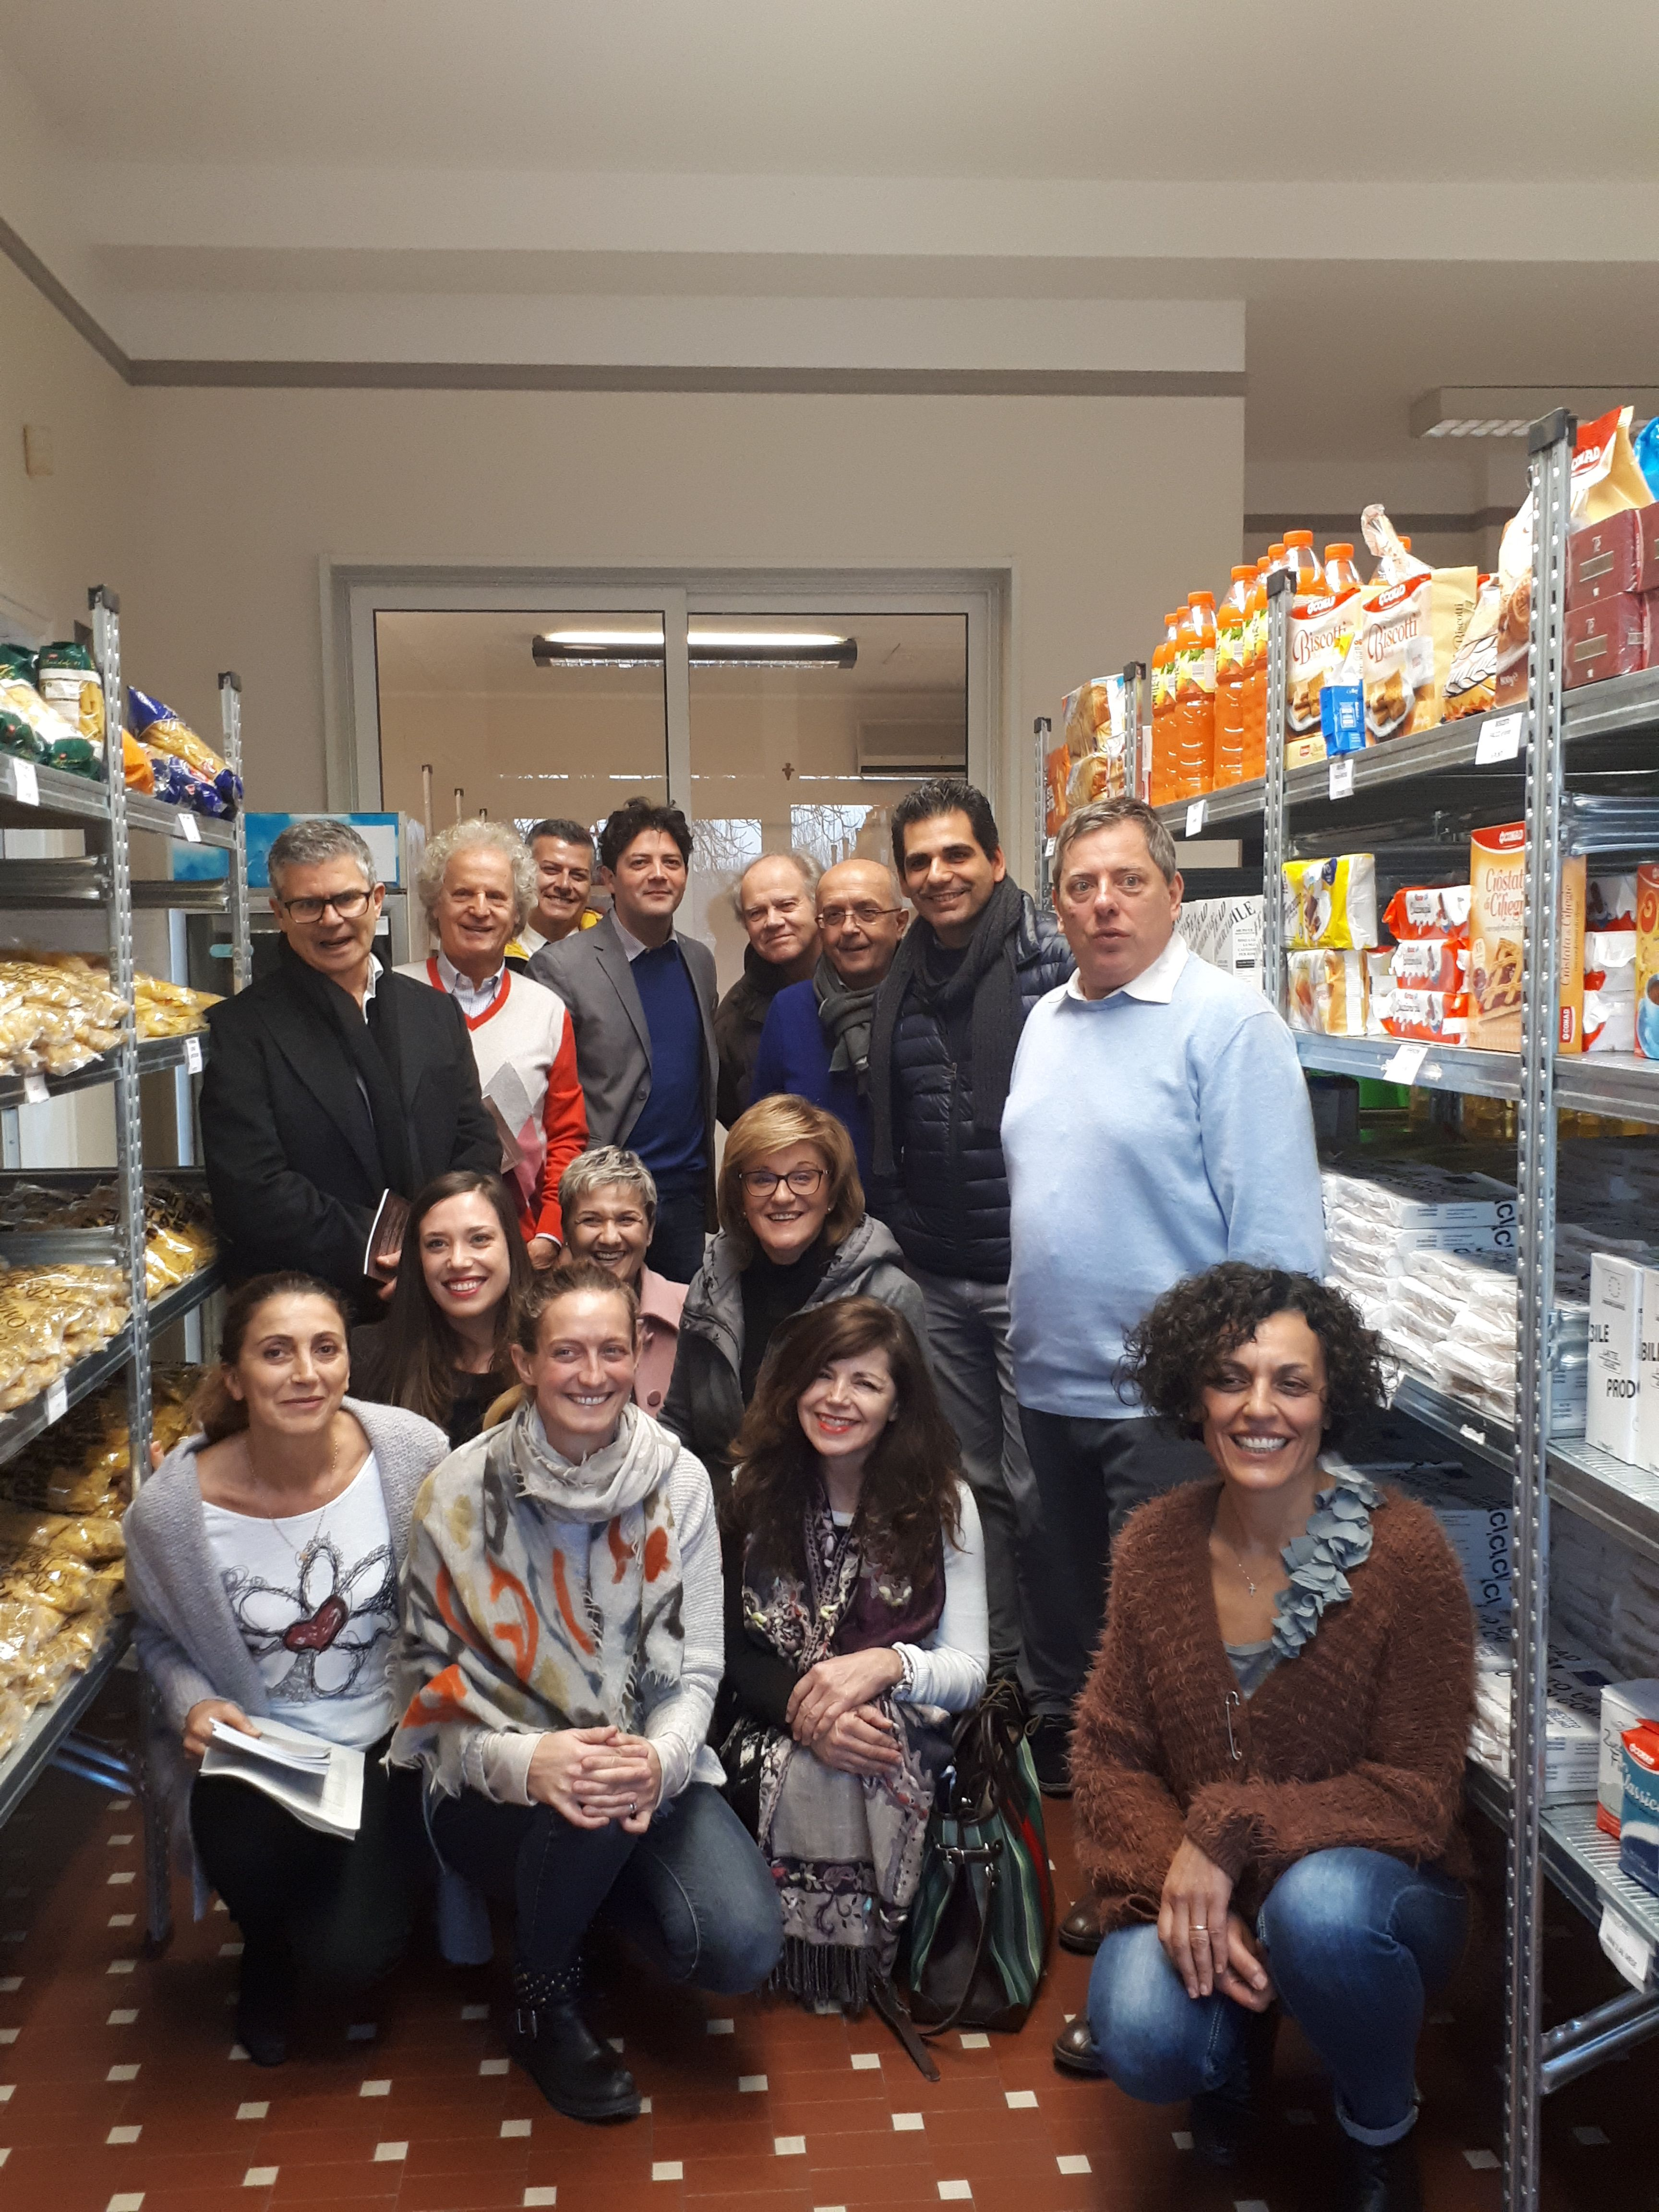 Lions Club Rimini in visita all'Emporio - 13 dicembre 2017